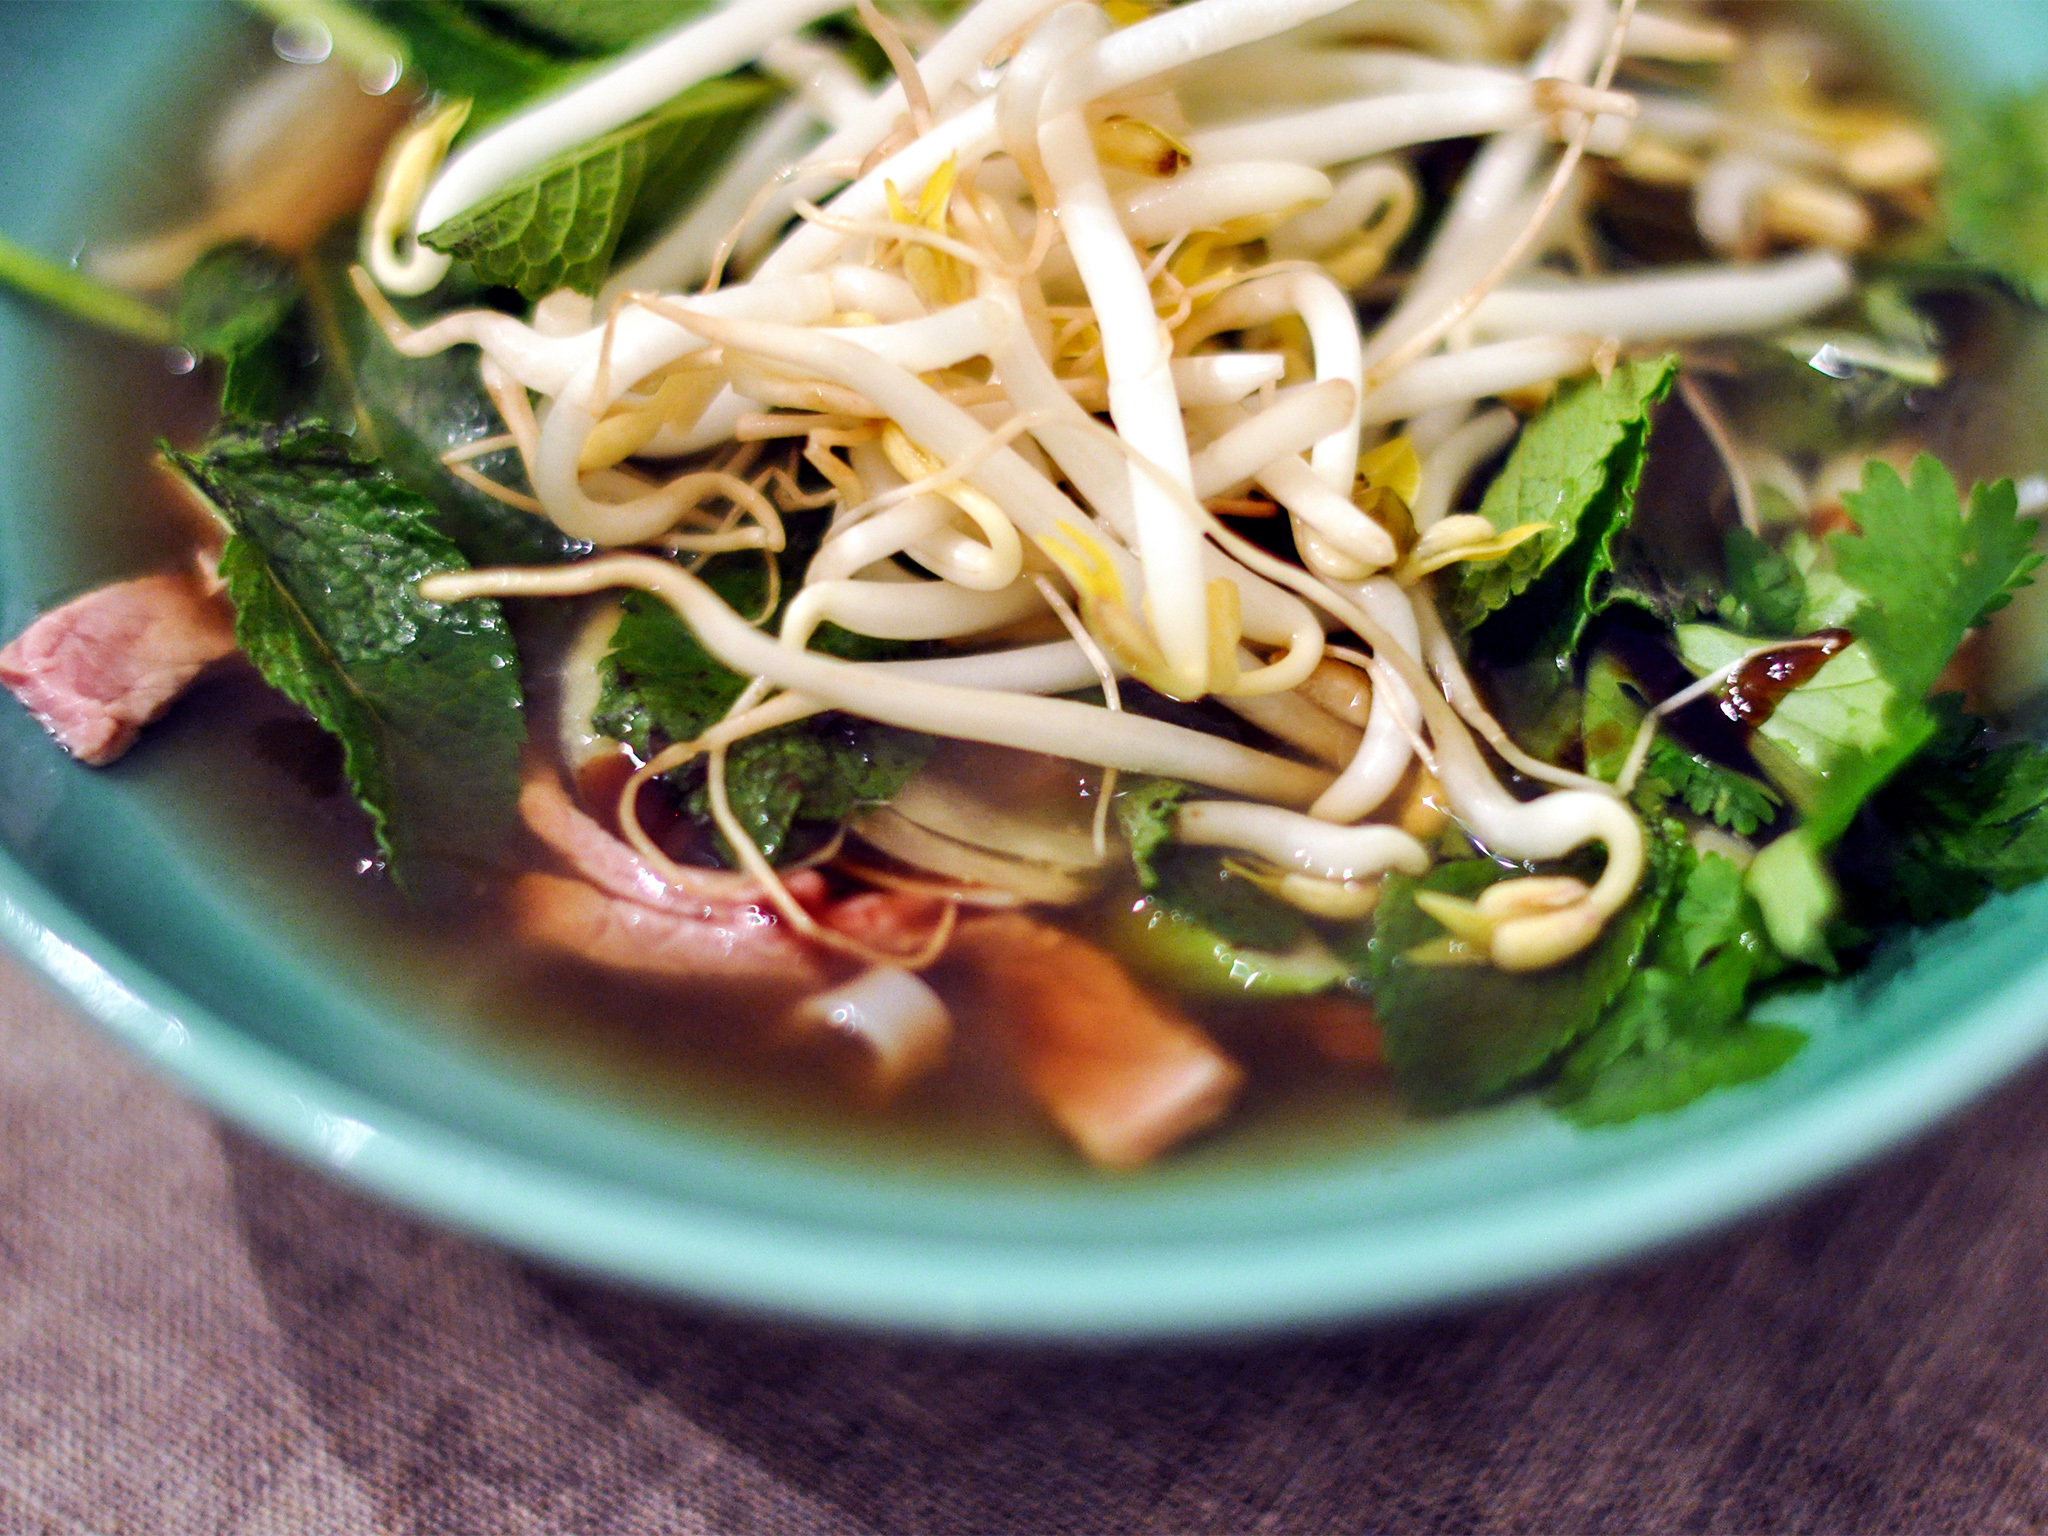 Bowl of pho soup with bean sprouts